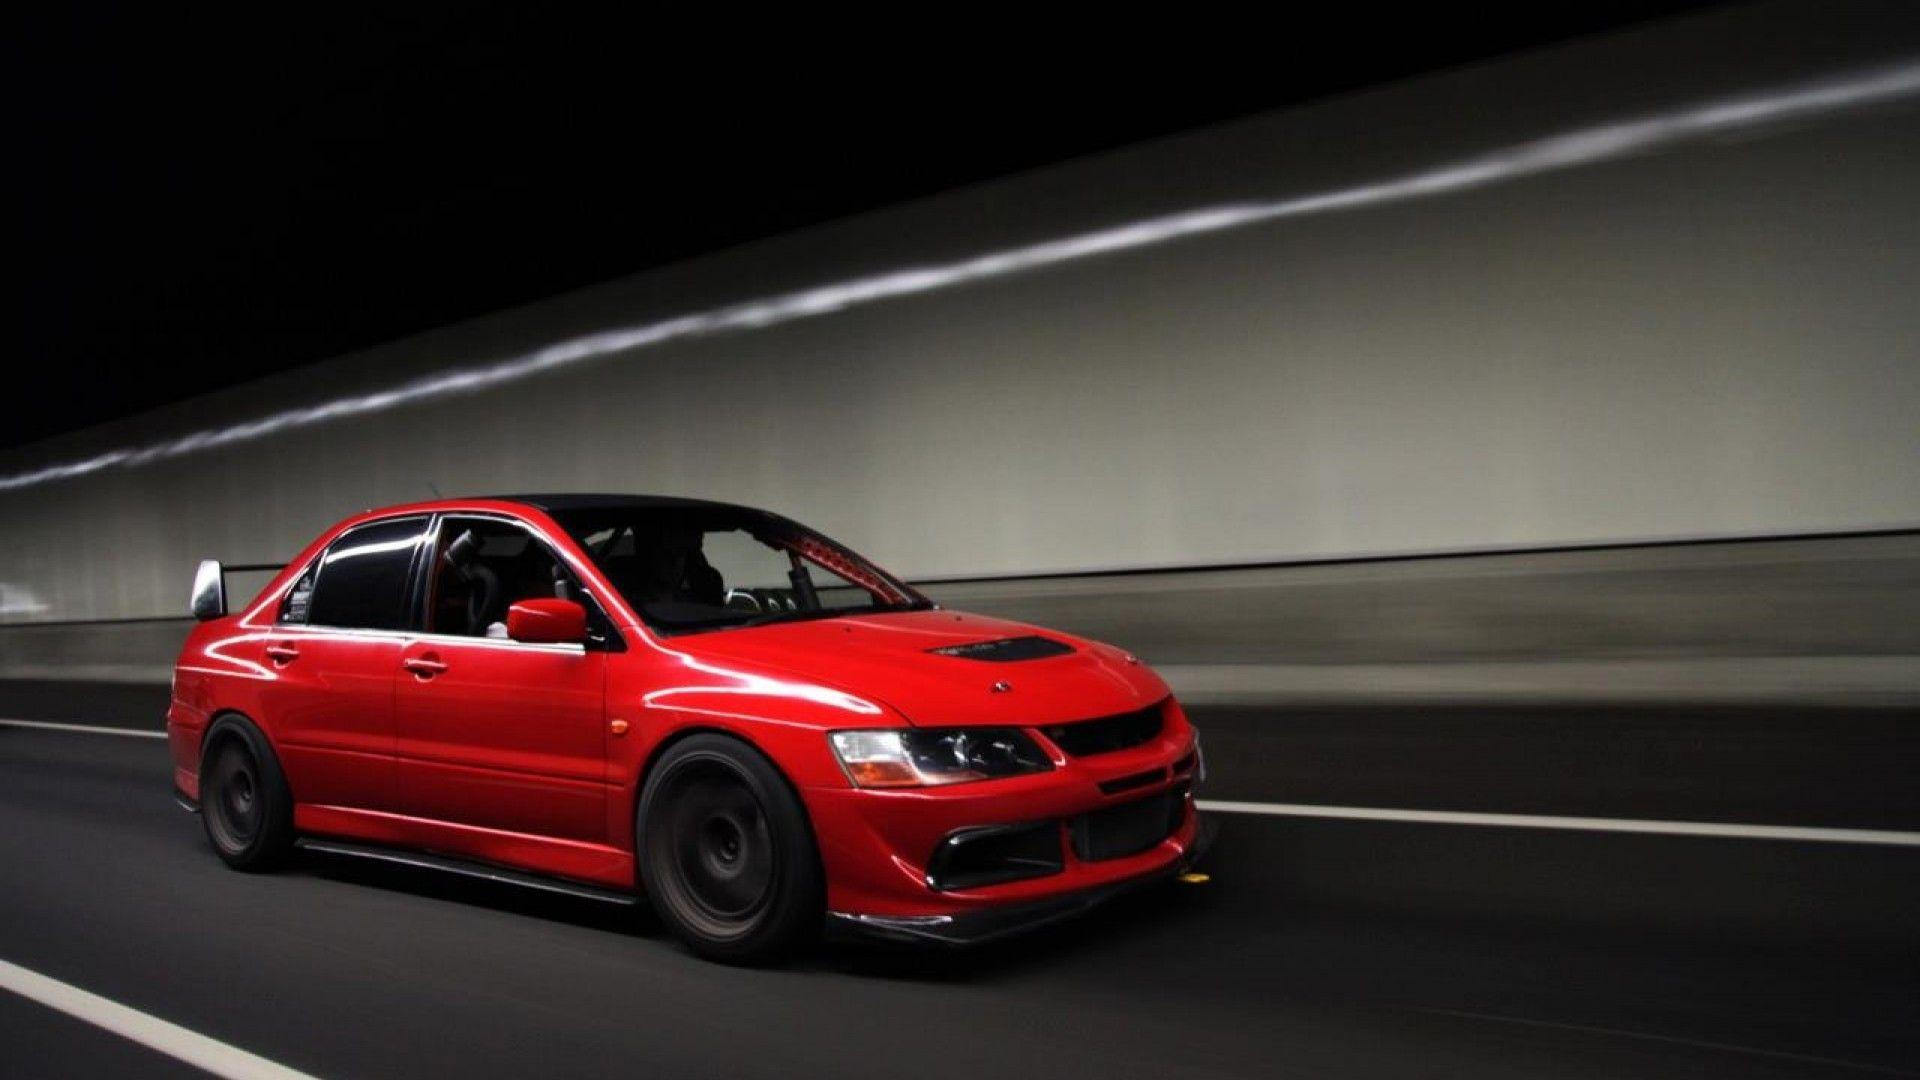 Mitsubishi Lancer Evolution 2015 wallpapers